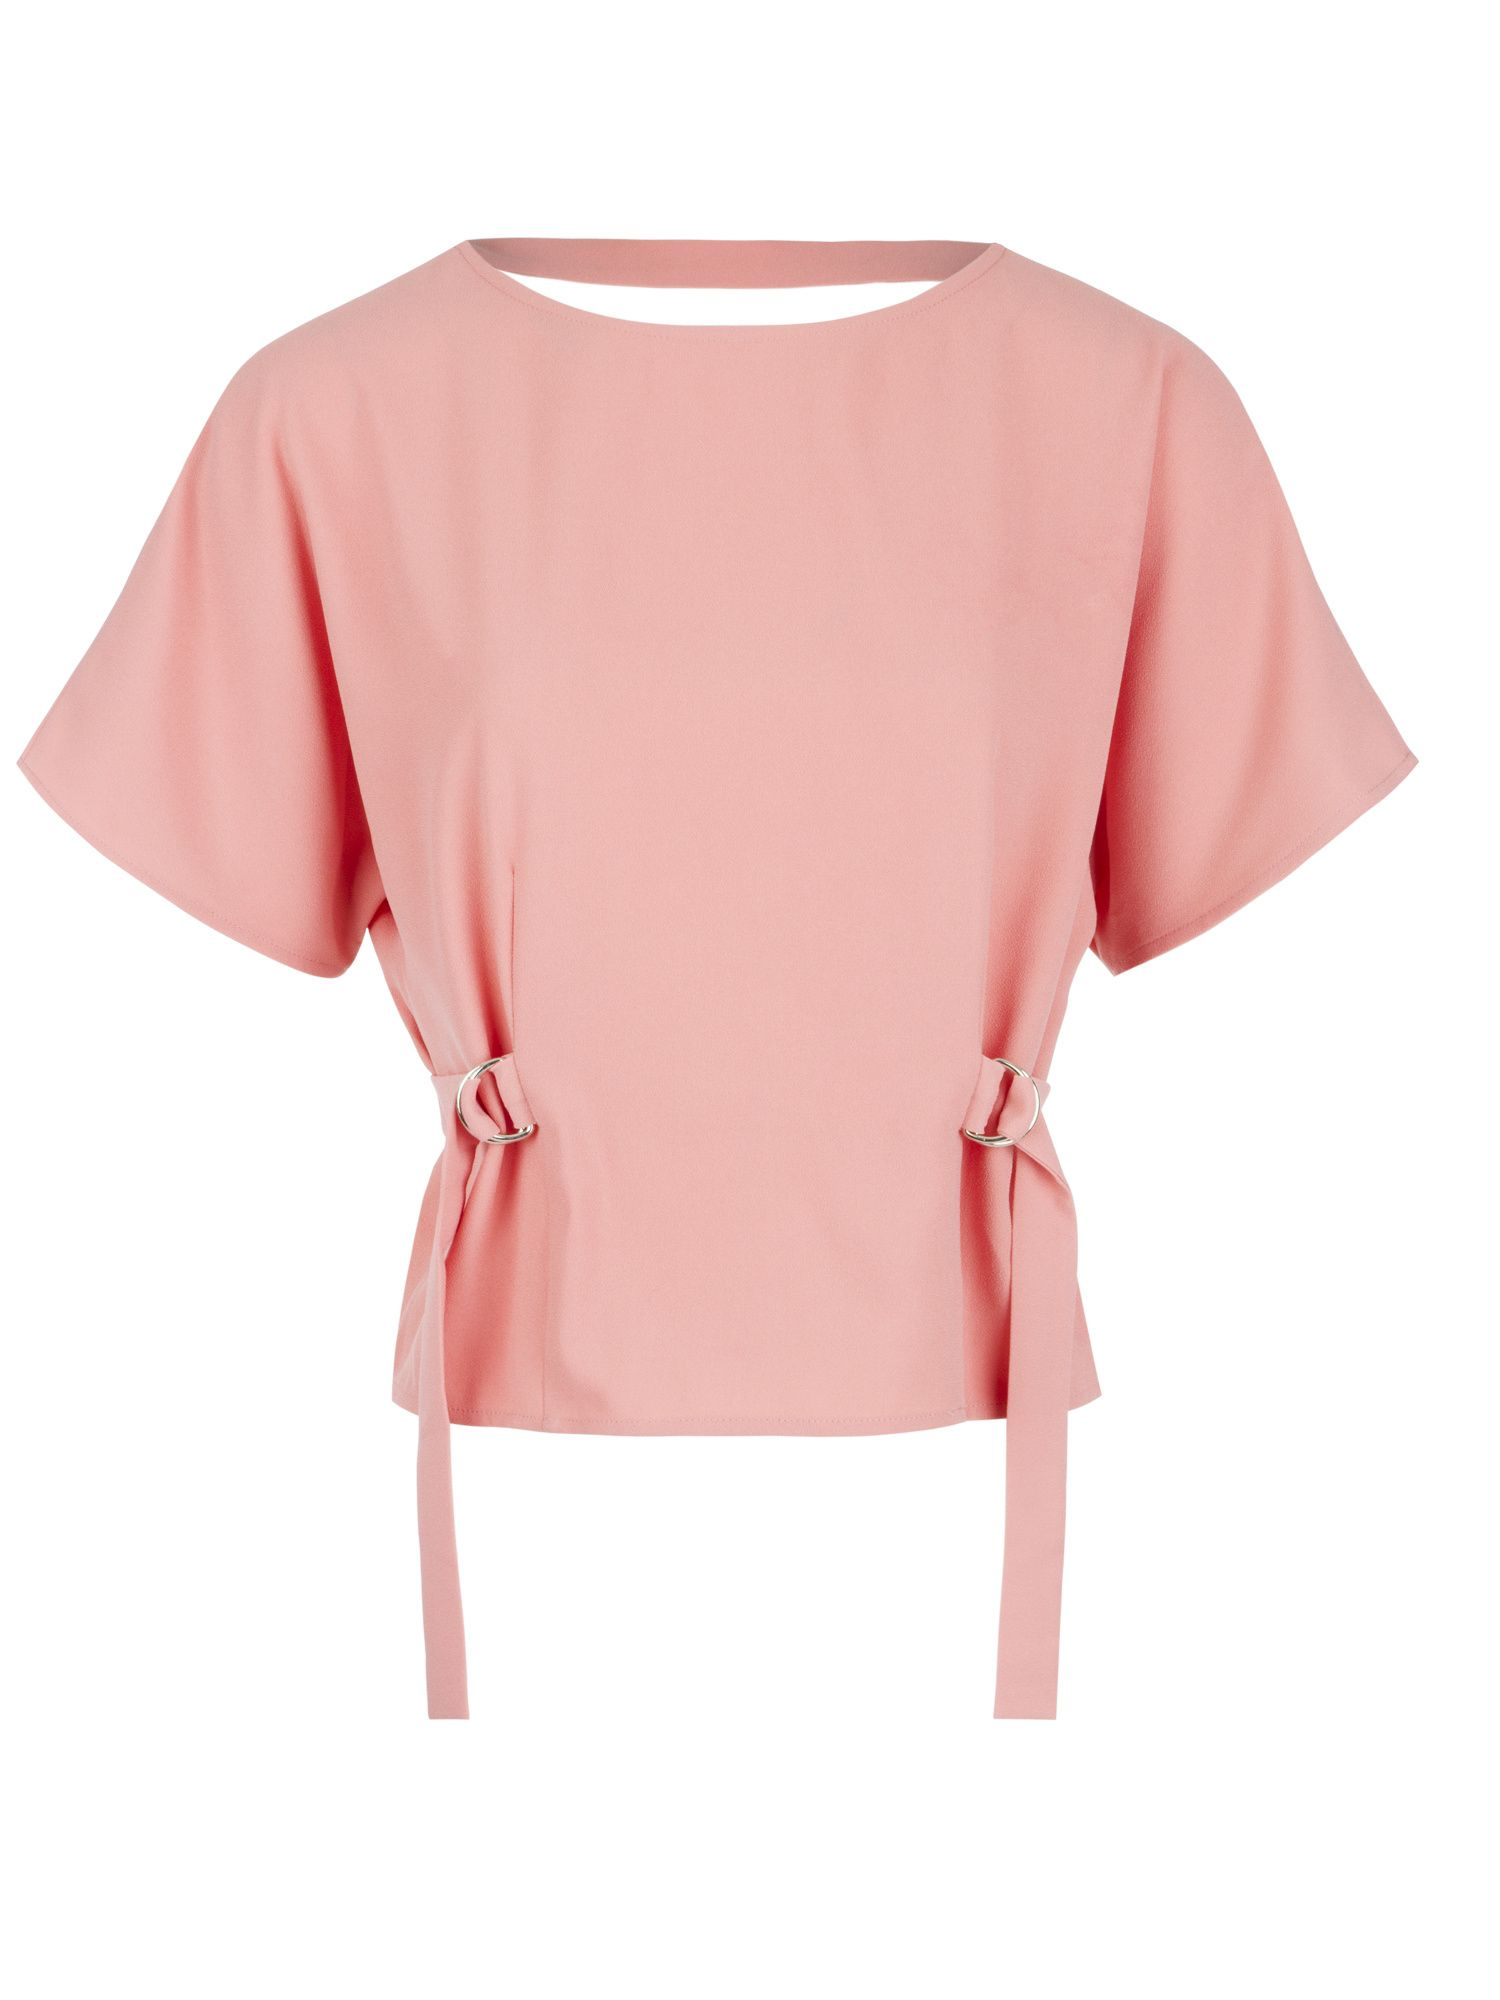 Morgan Fluid Crepe Top With Open Back, Rose